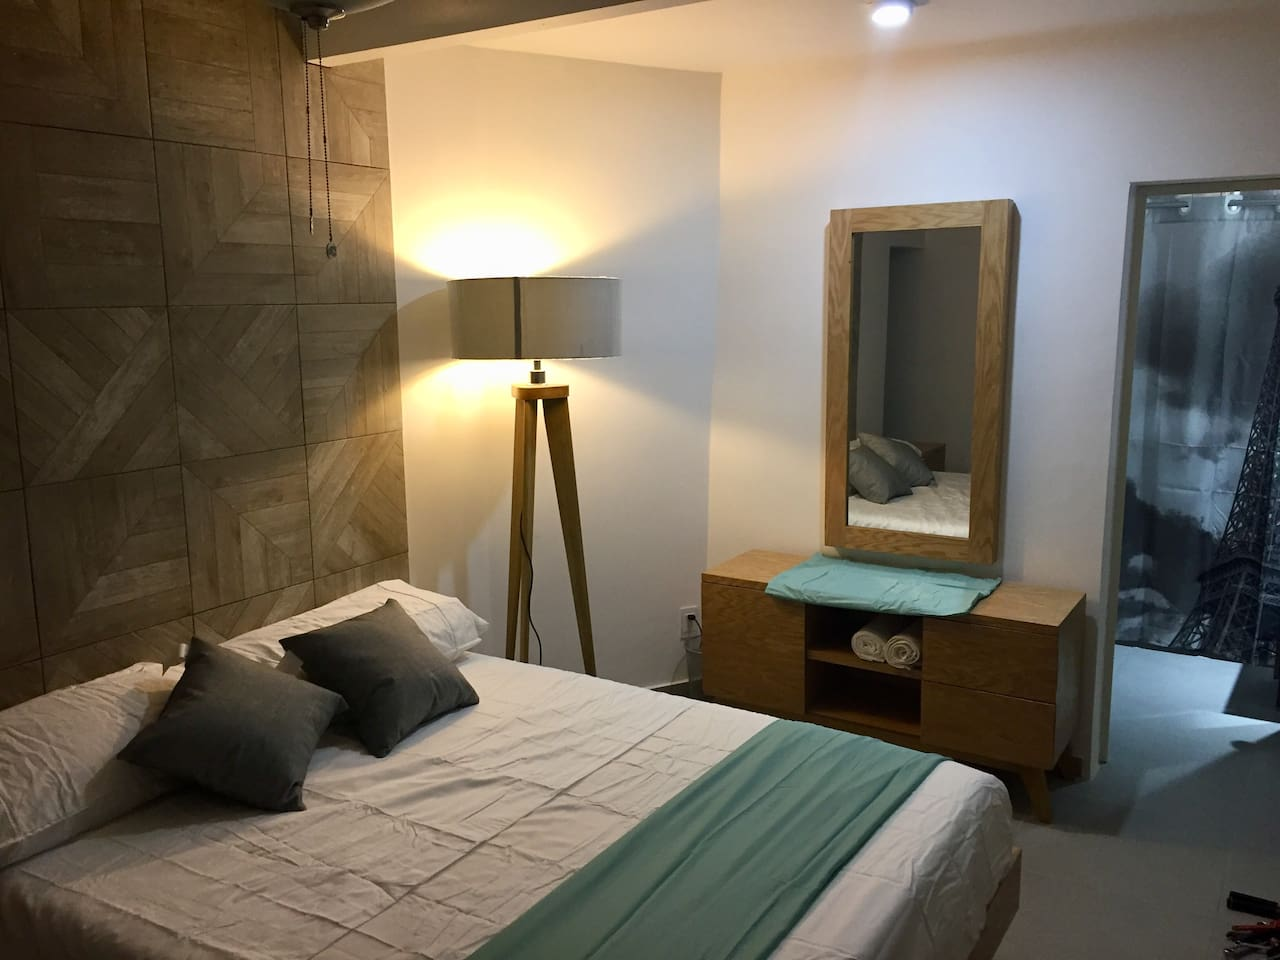 Modern, clean and comfortable room with queen size, memory foam mattress in Tequila Jalisco 3 blocks away from the center of the town.